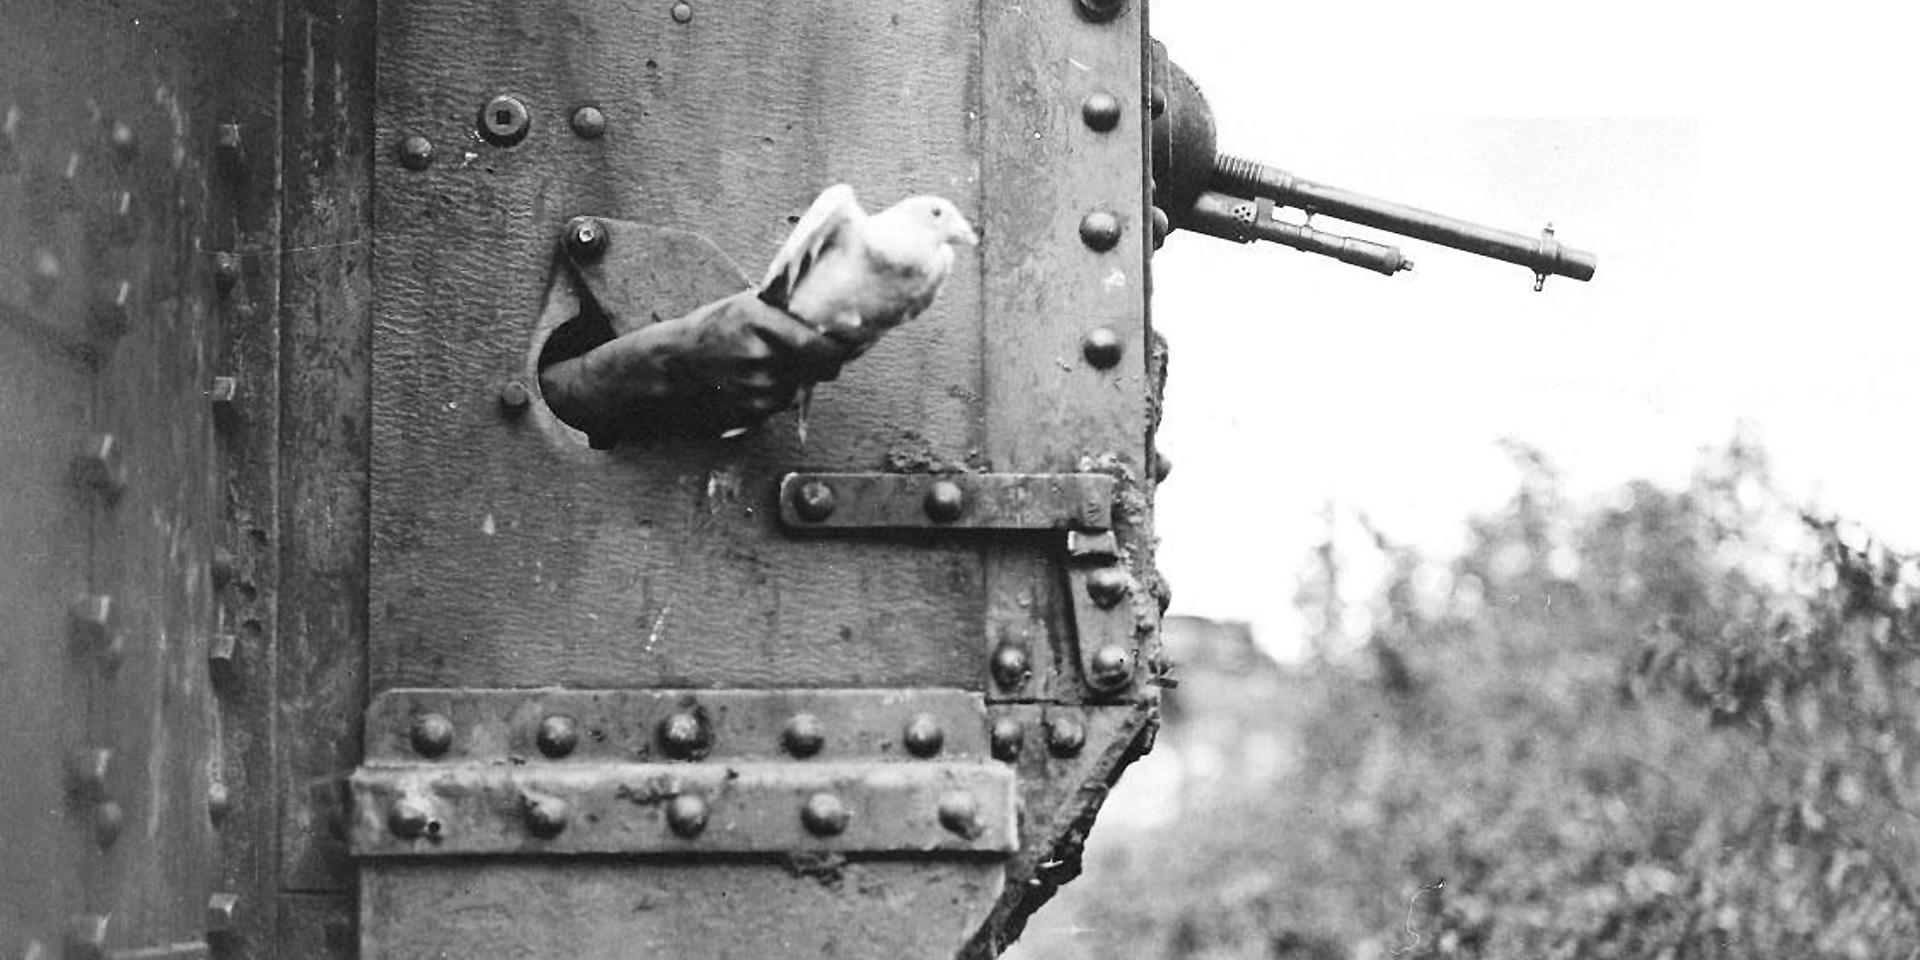 A messenger pigeon being released from the side of a British tank, 1918 © IWM (Q 9247)